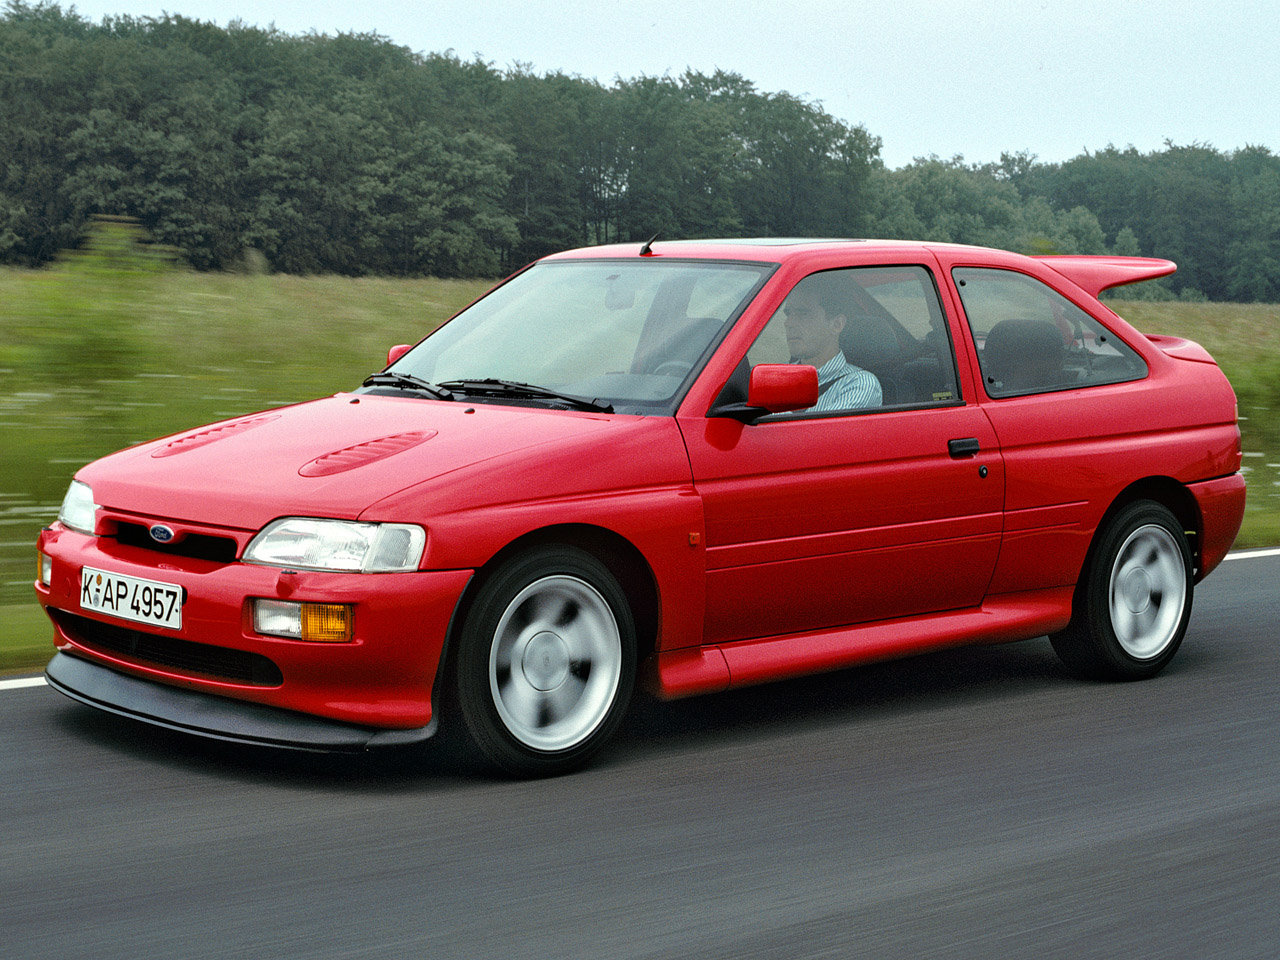 Ford escort 1992 photo - 4